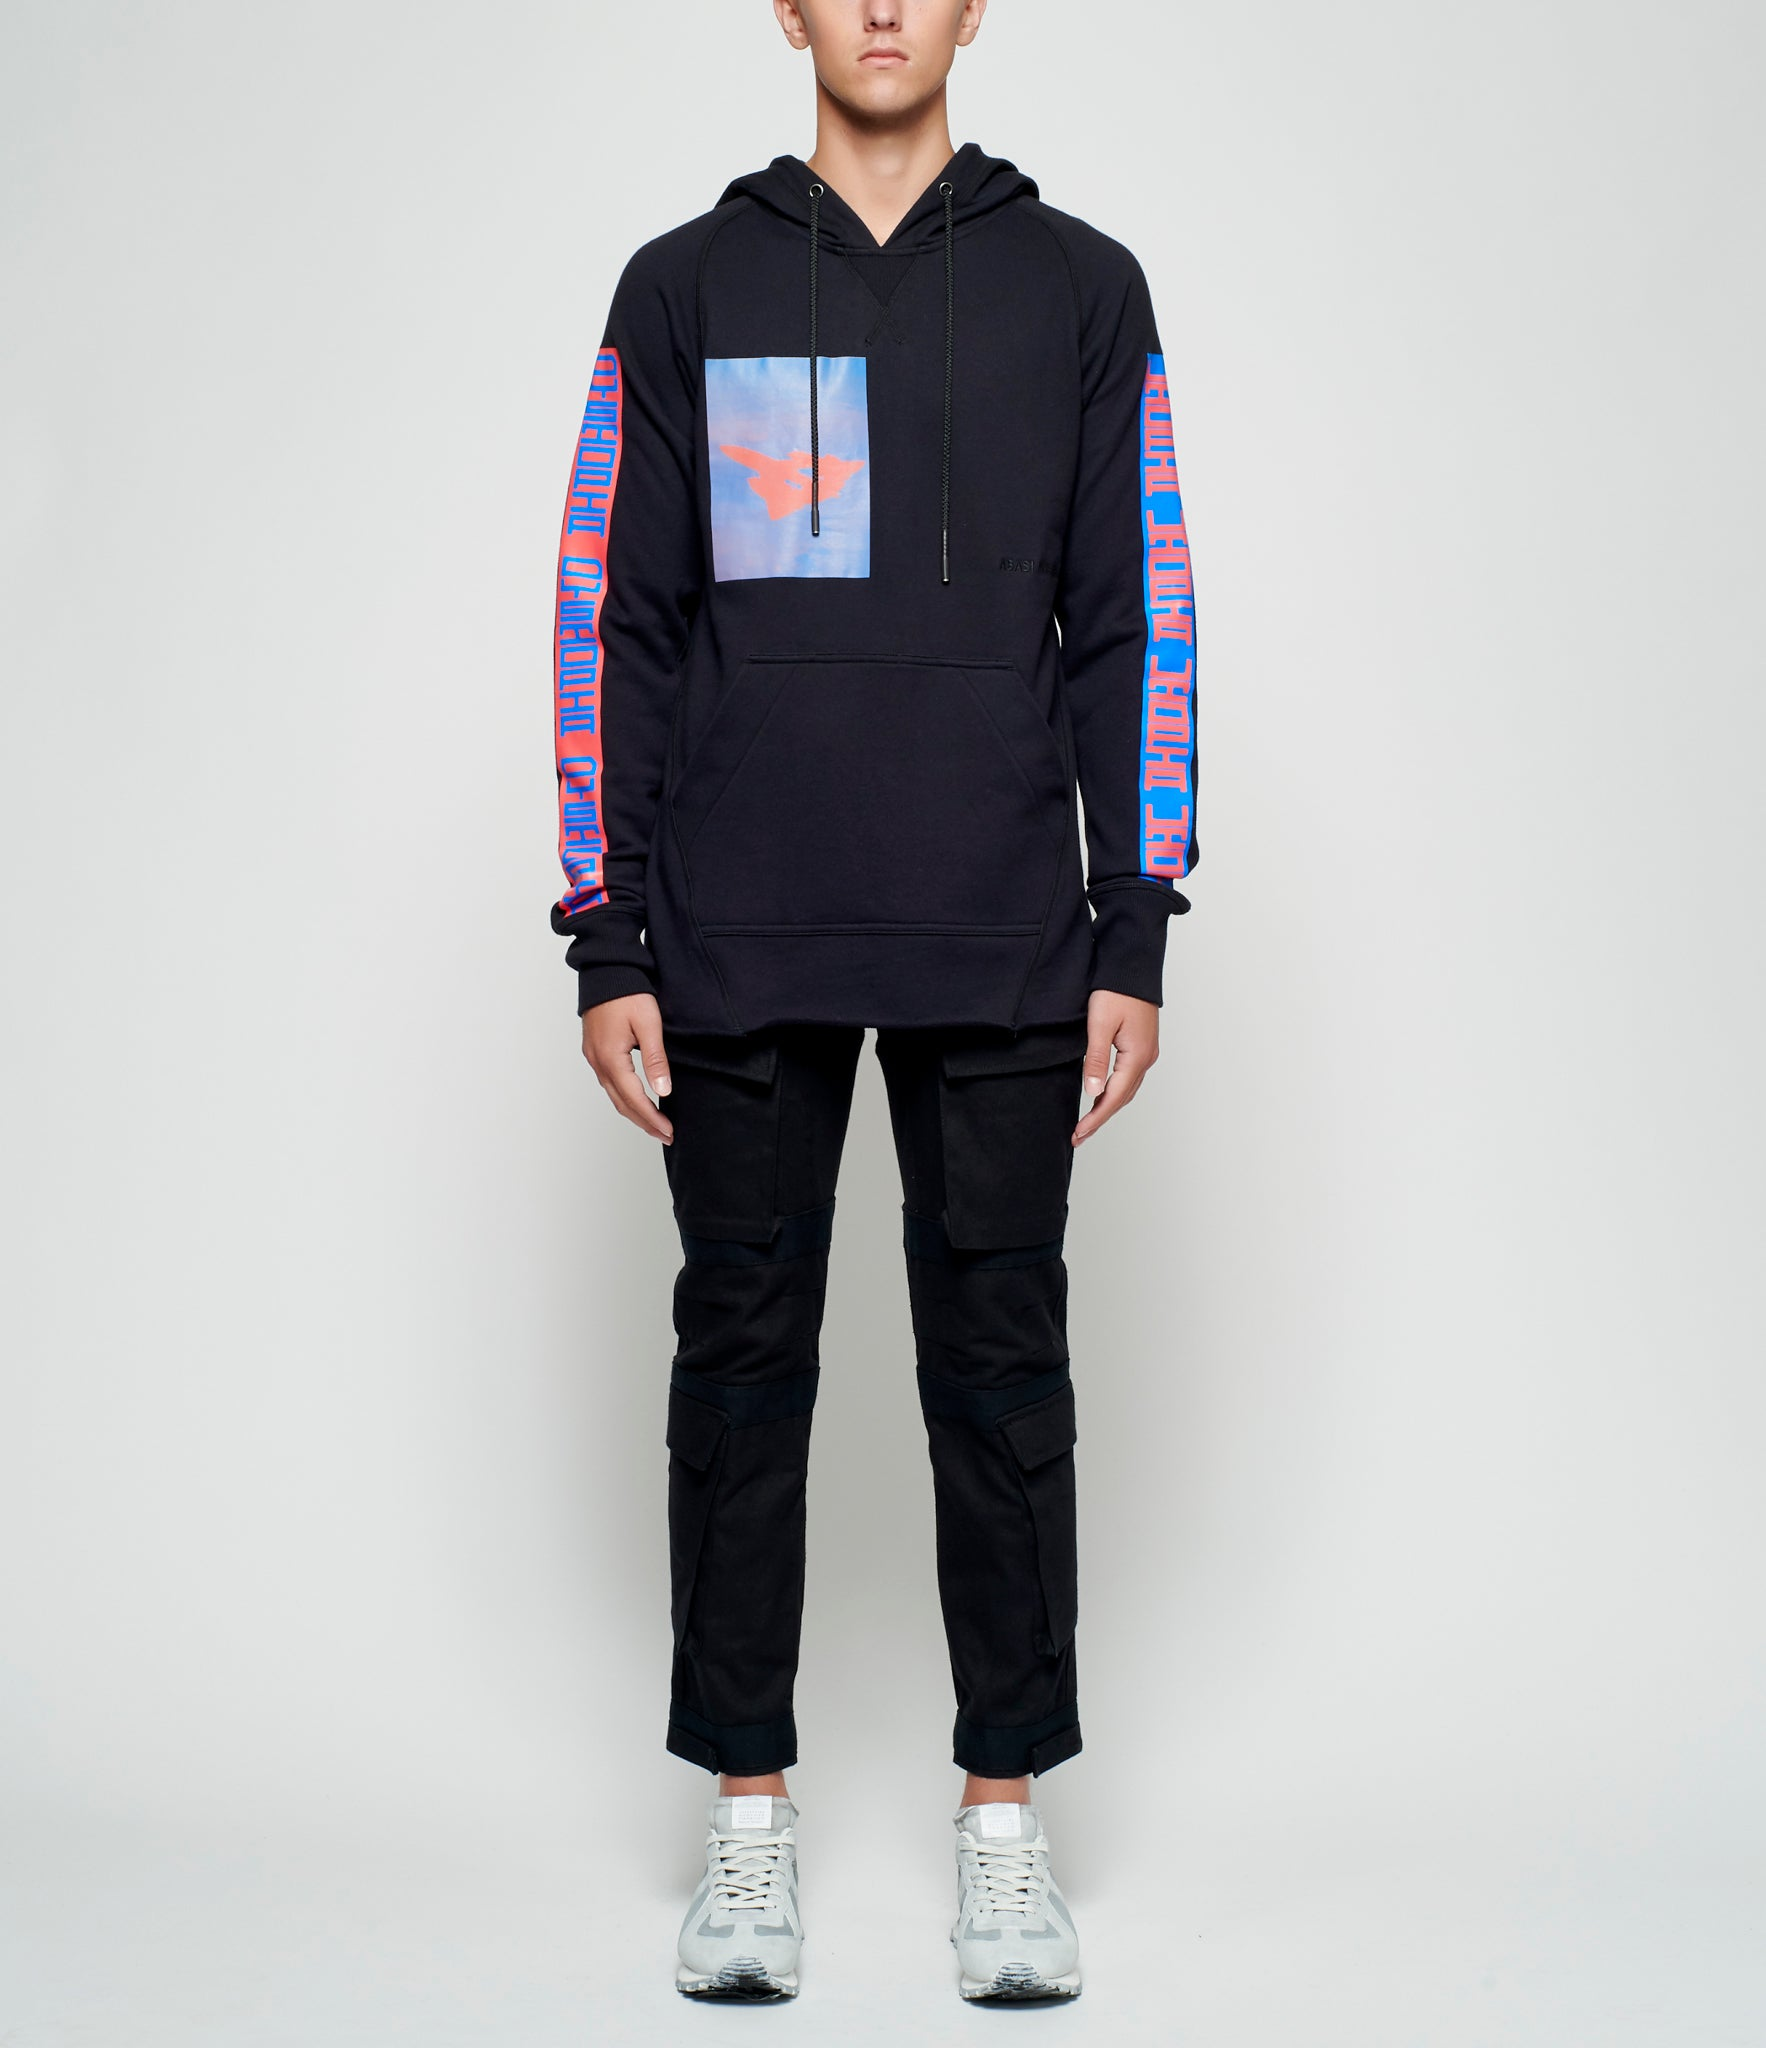 Abasi Rosborough Arc Hood Sweatshirt